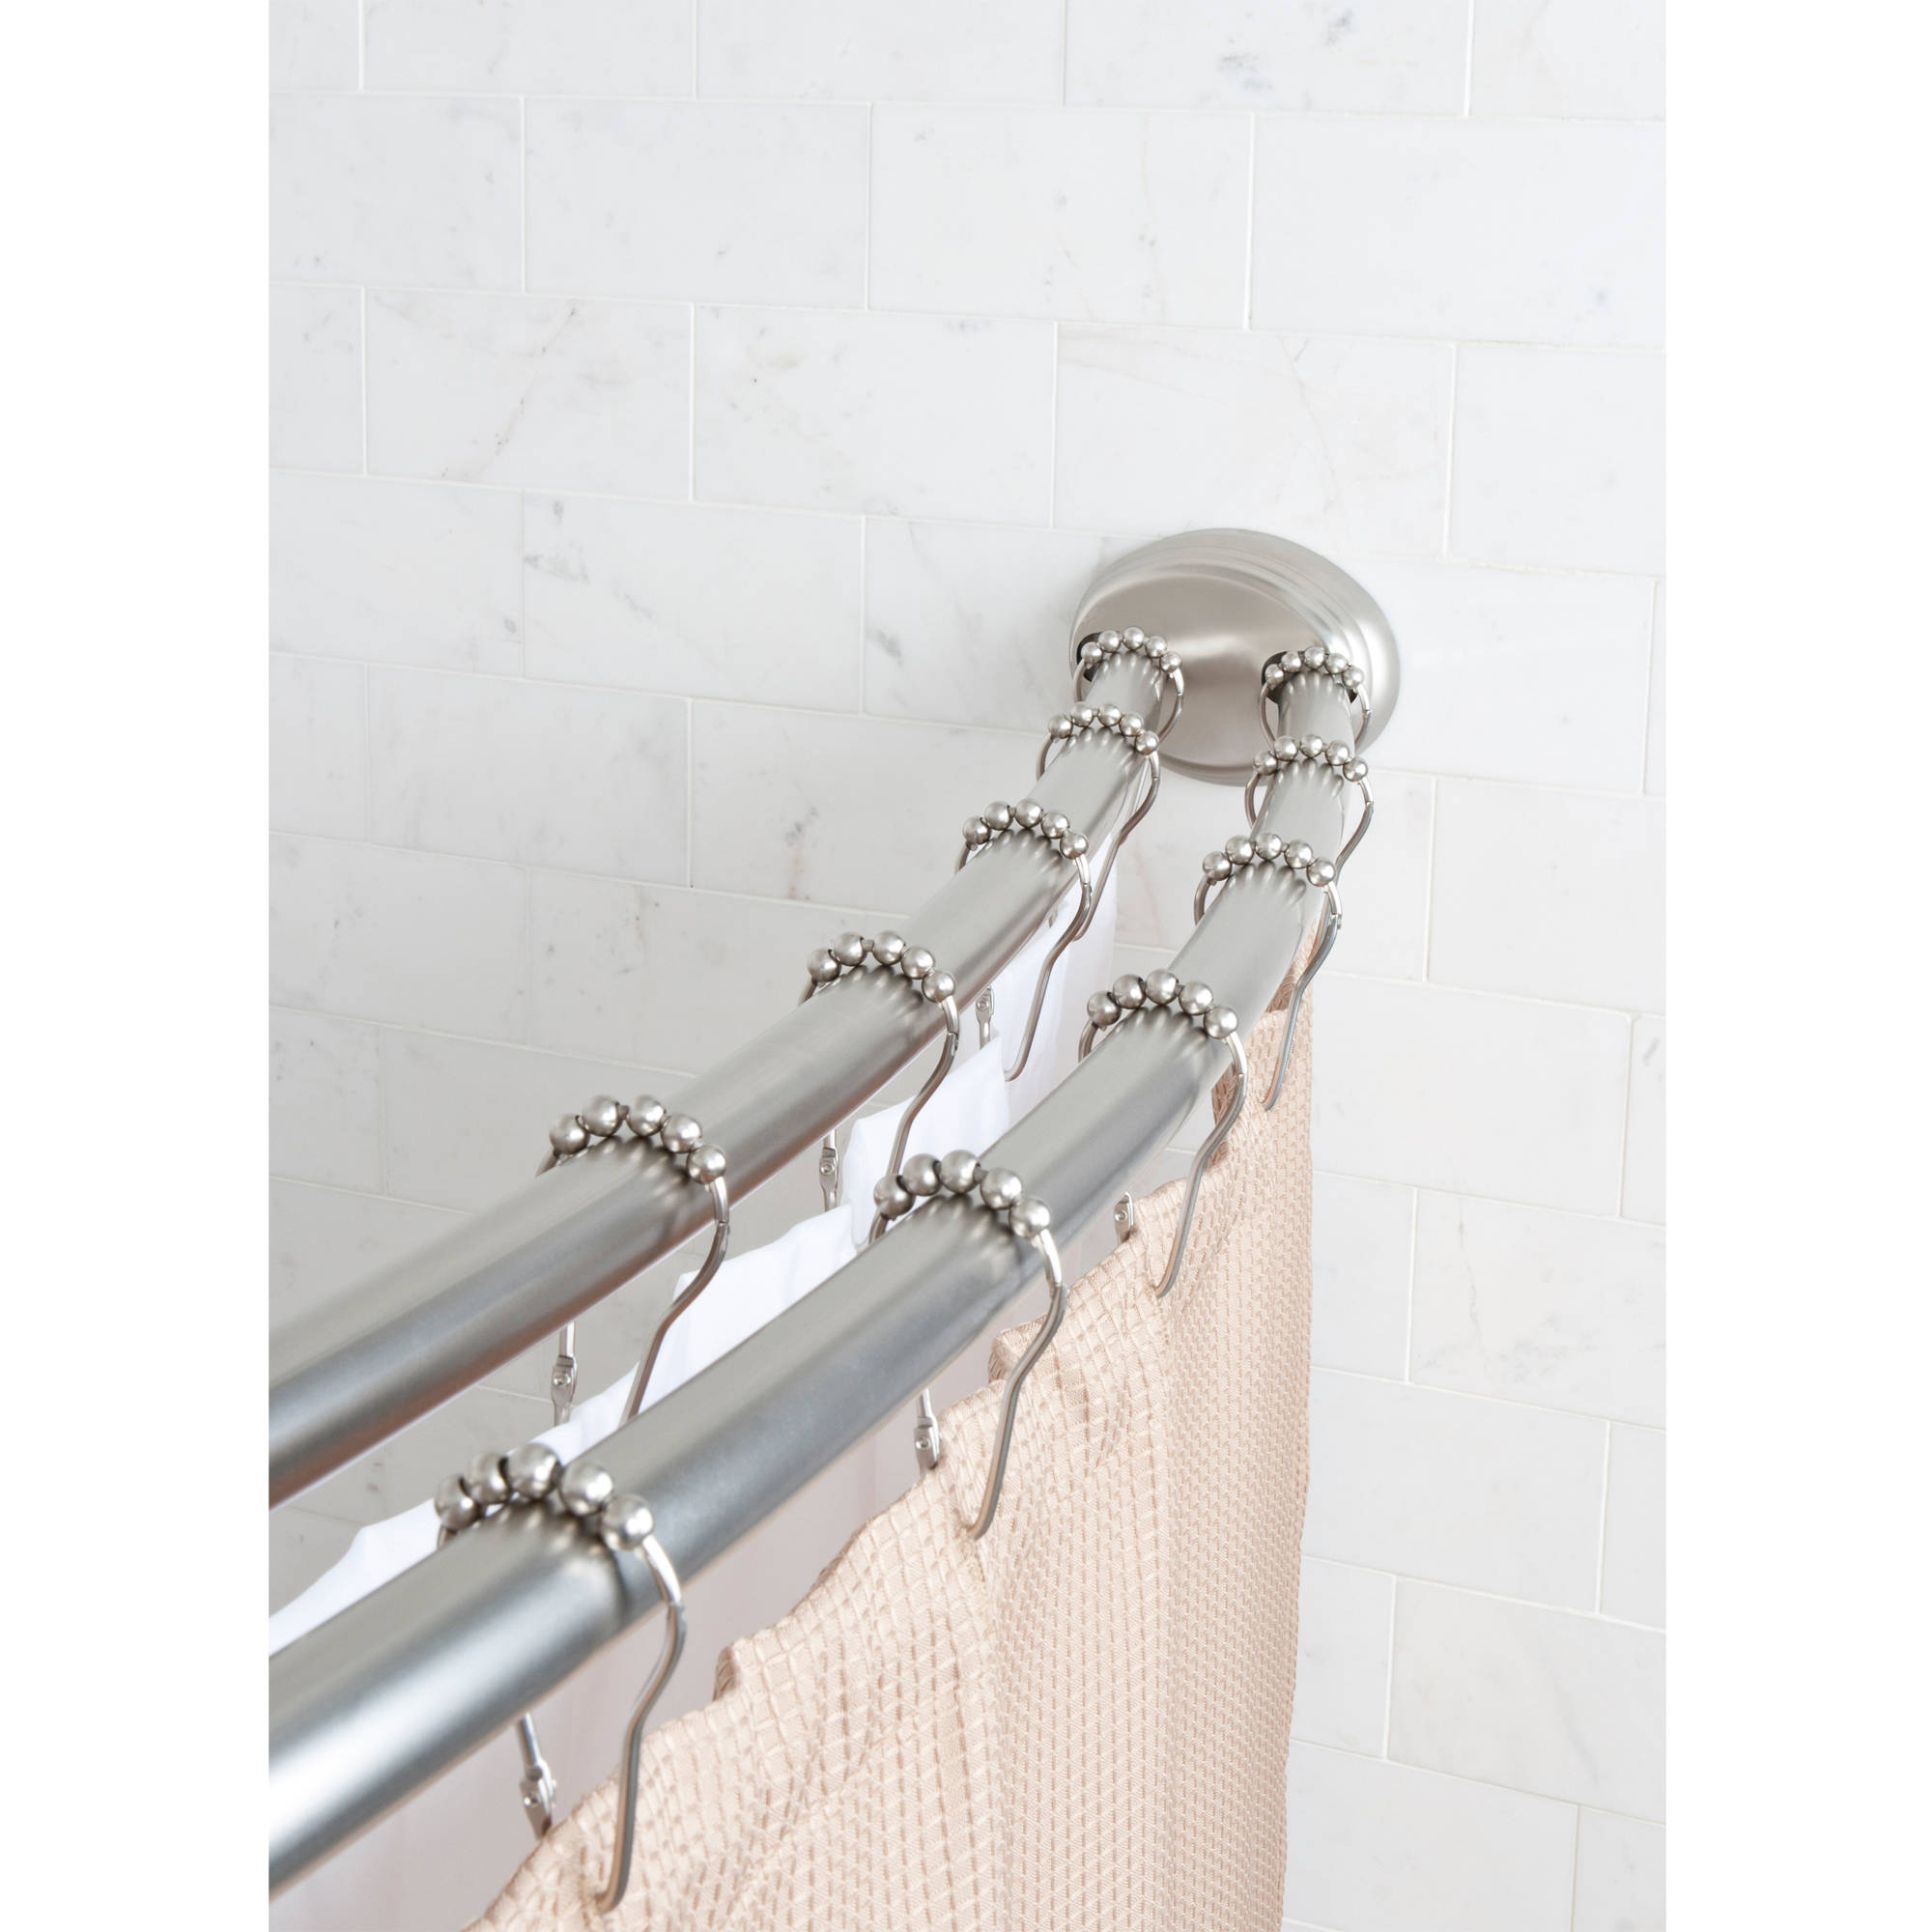 Bathroom Curtain Rods | Tension Shower Curtain Rod | Shower Curtain Tension Rod